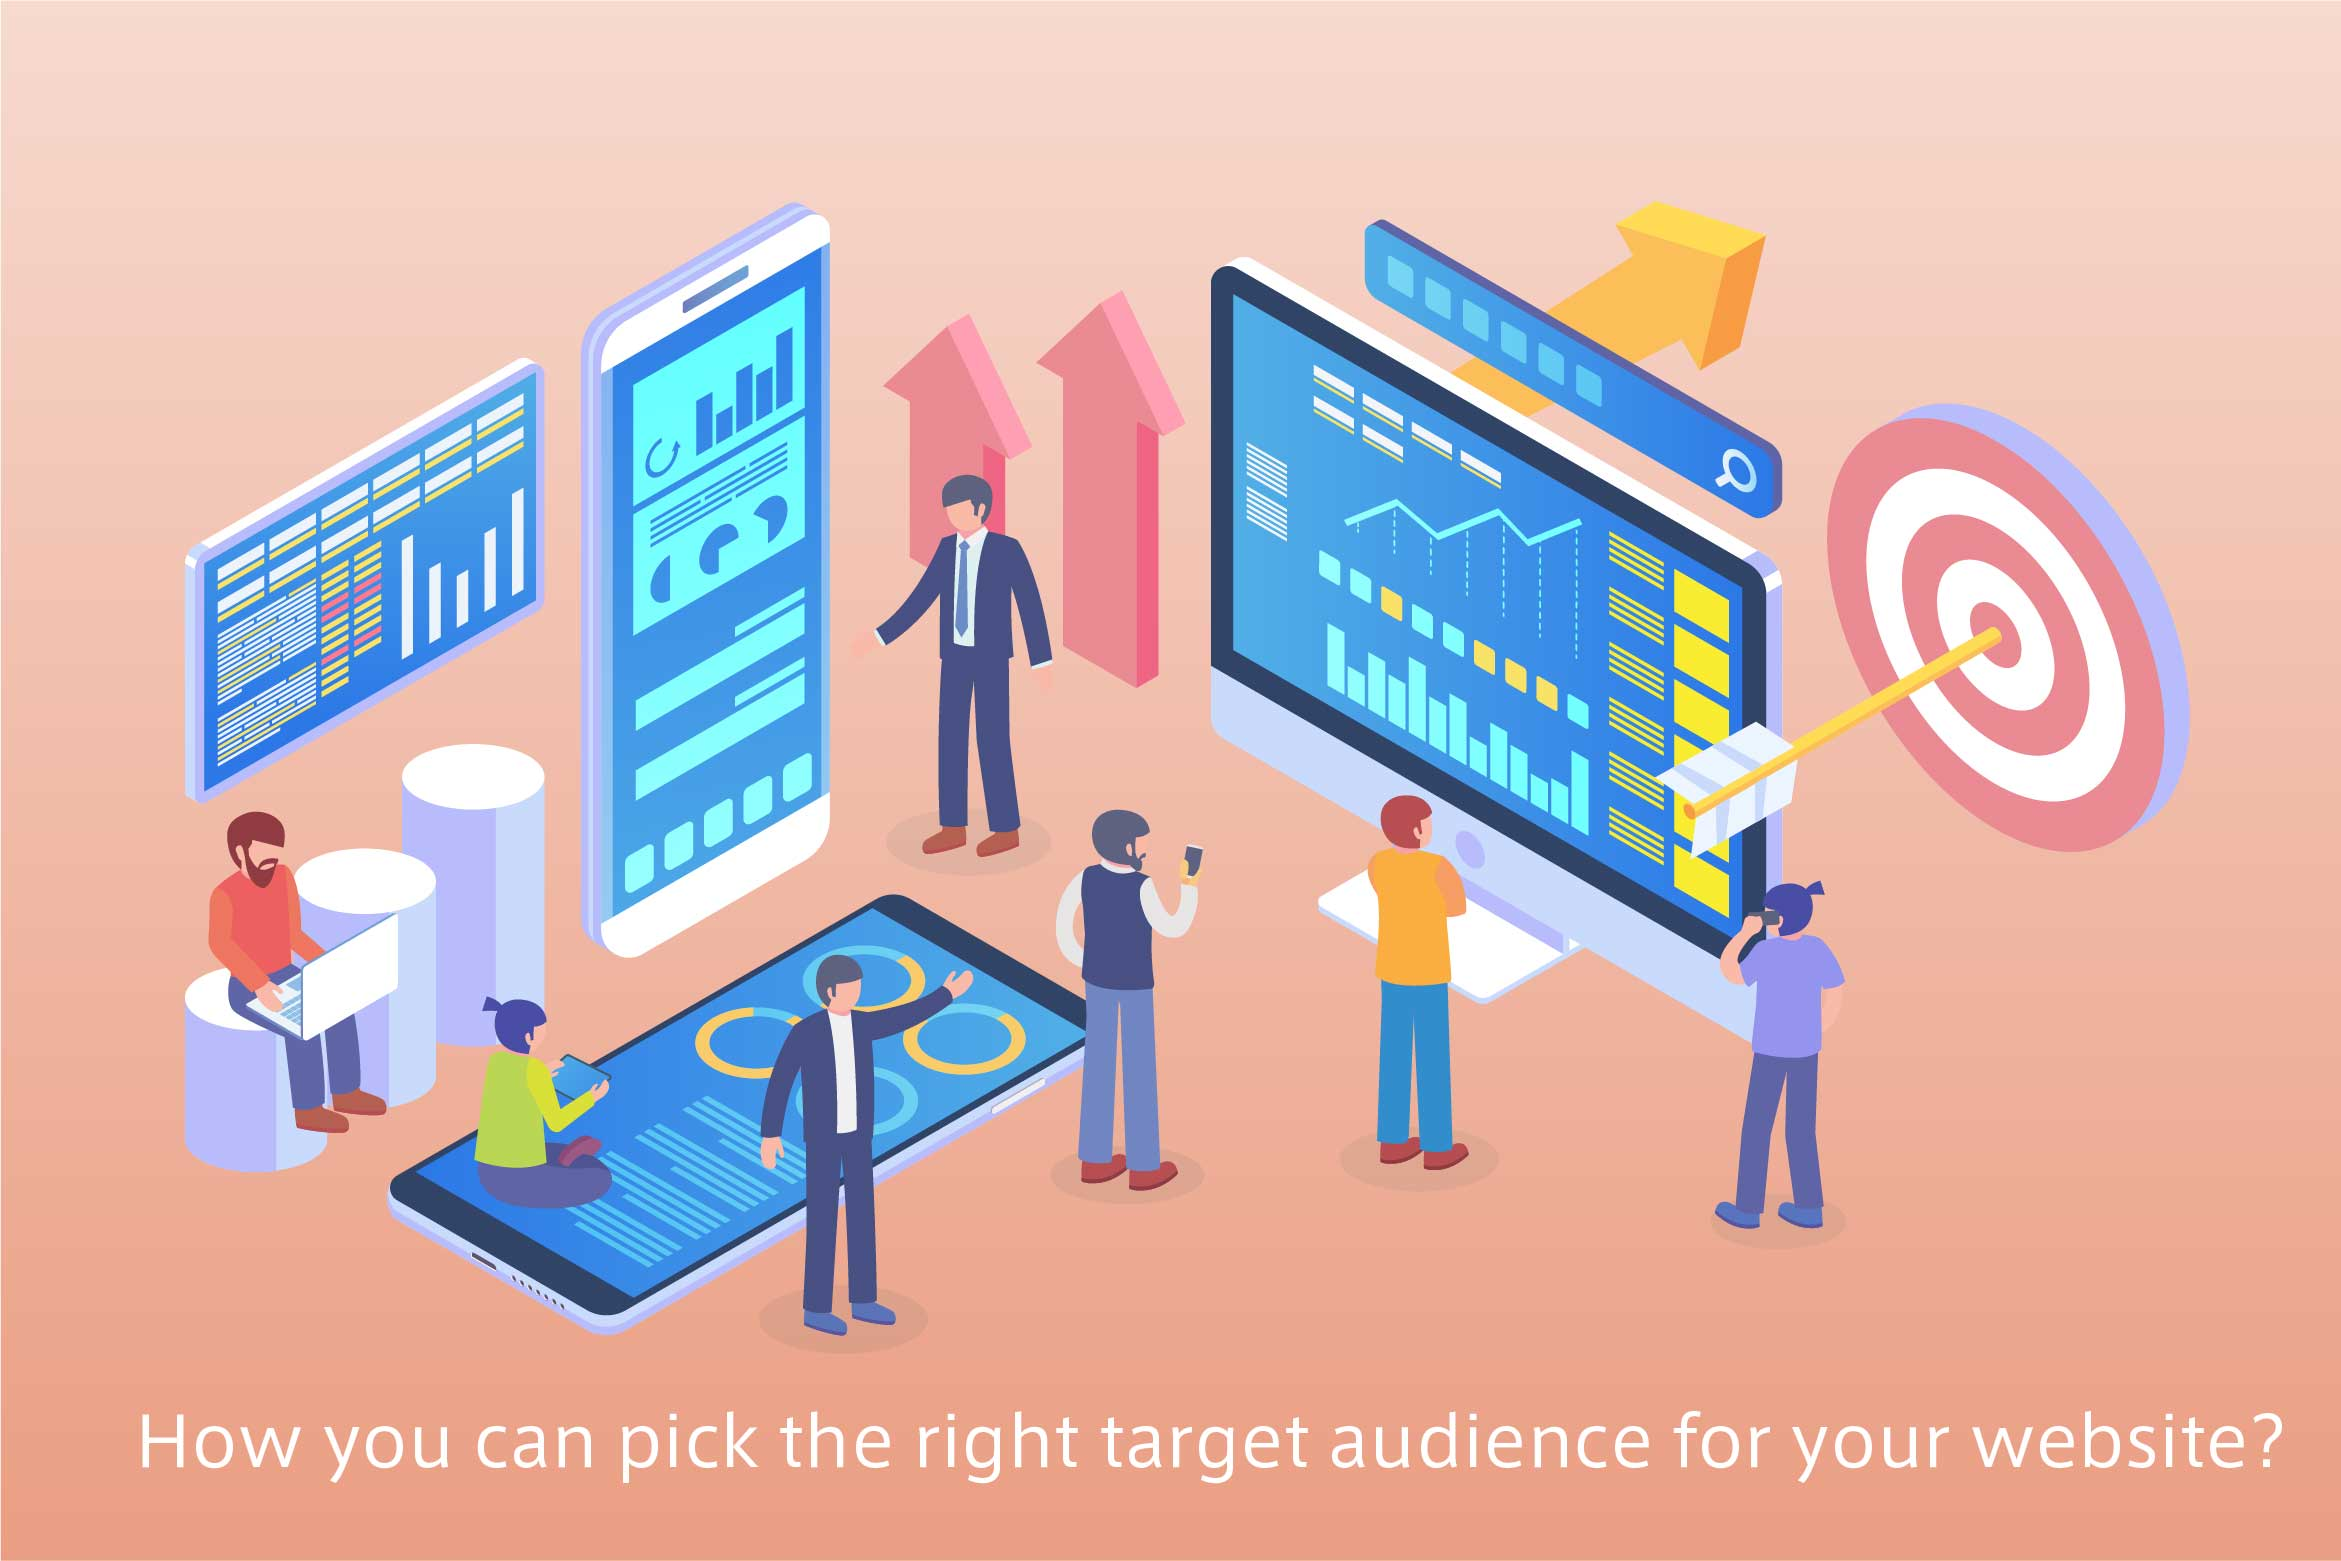 How you can pick the right target audience for your website?